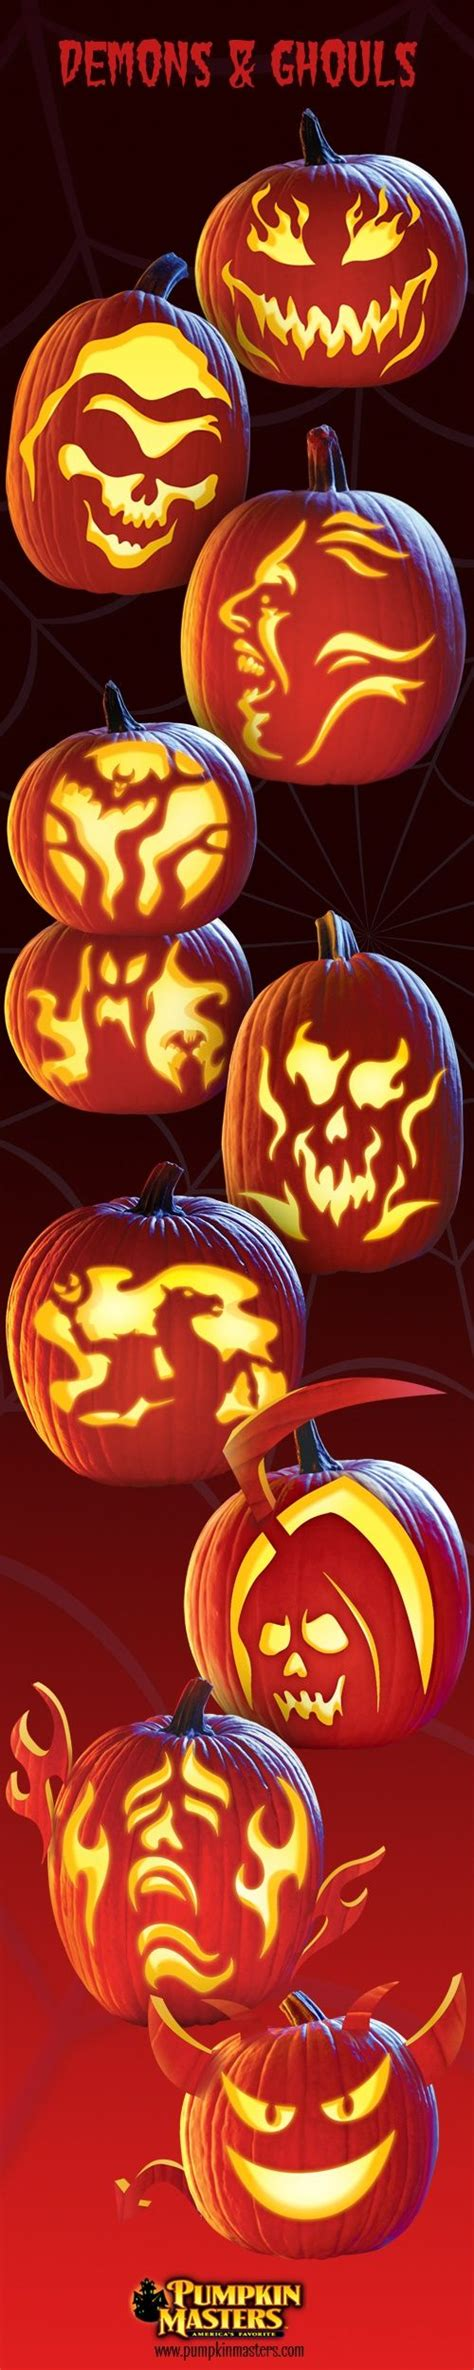 Scary Pumpkin Carving Templates by Best 25 Scary Pumpkin Carving Ideas On